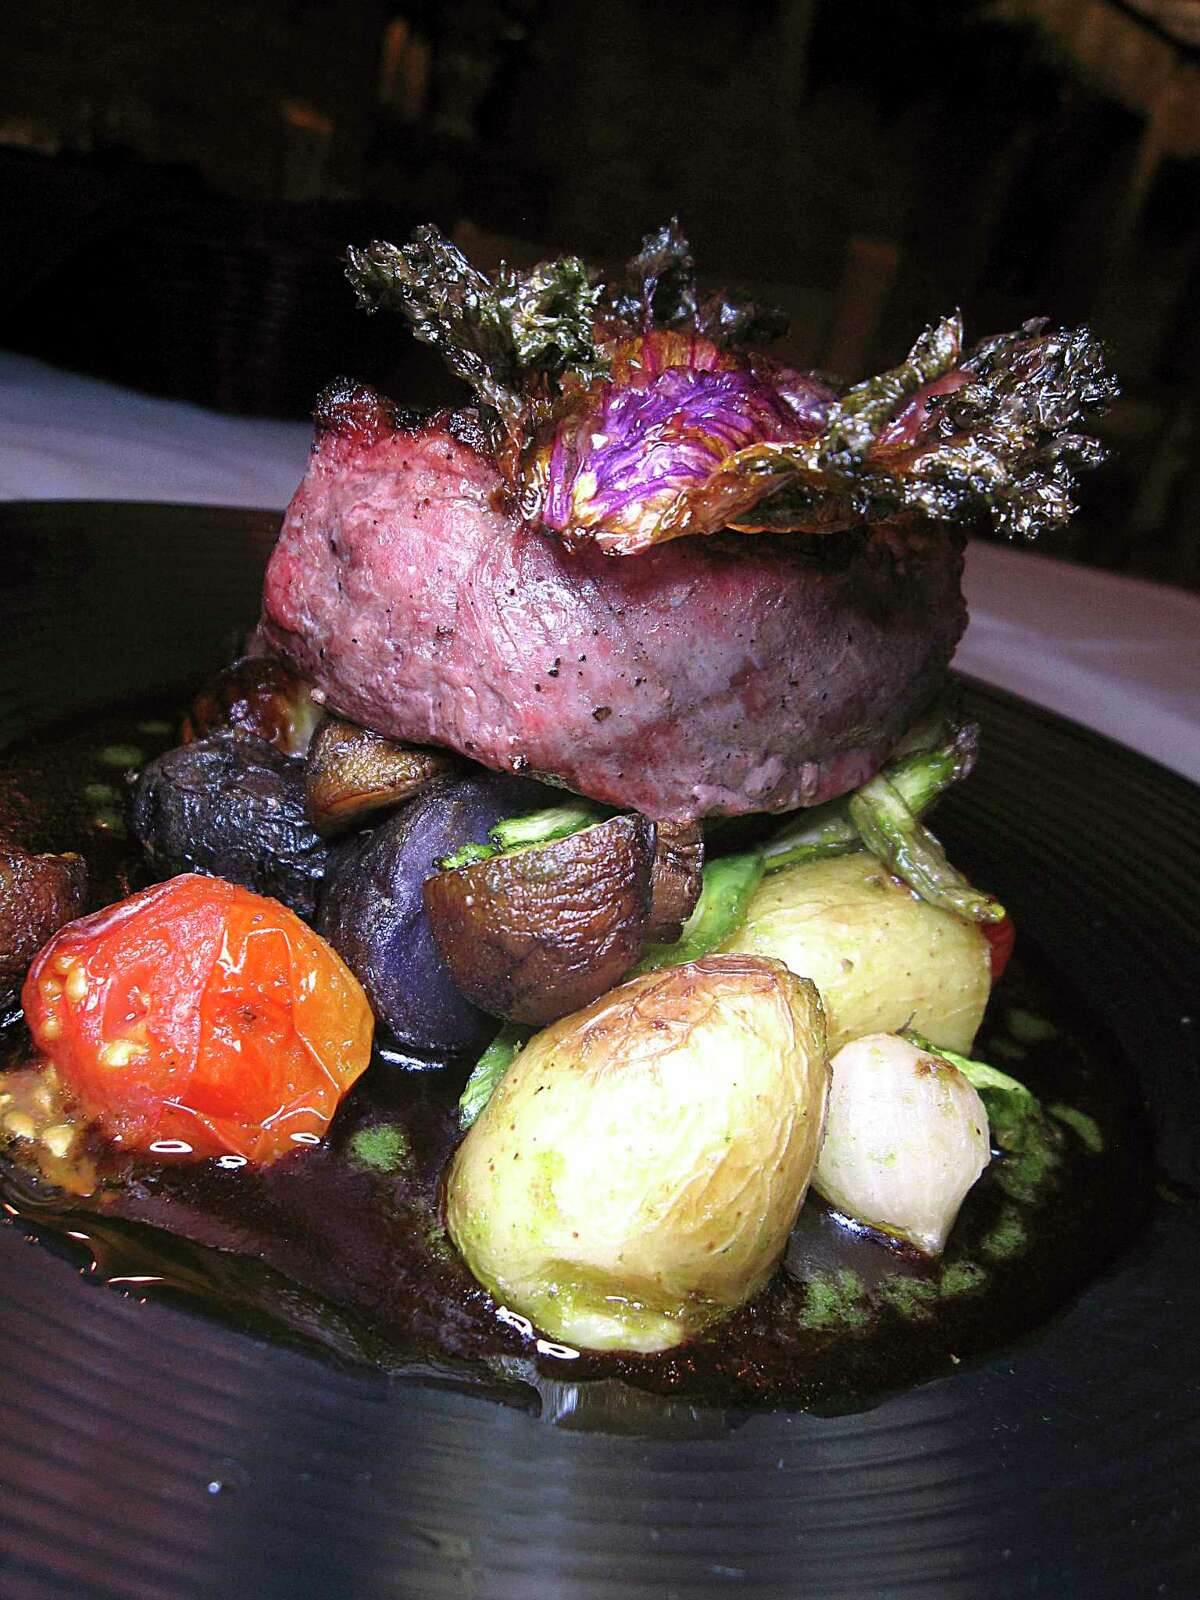 A beef tenderloin steak comes with roasted mushrooms, asparagus, tomatoes and potatoes at Cappy's.